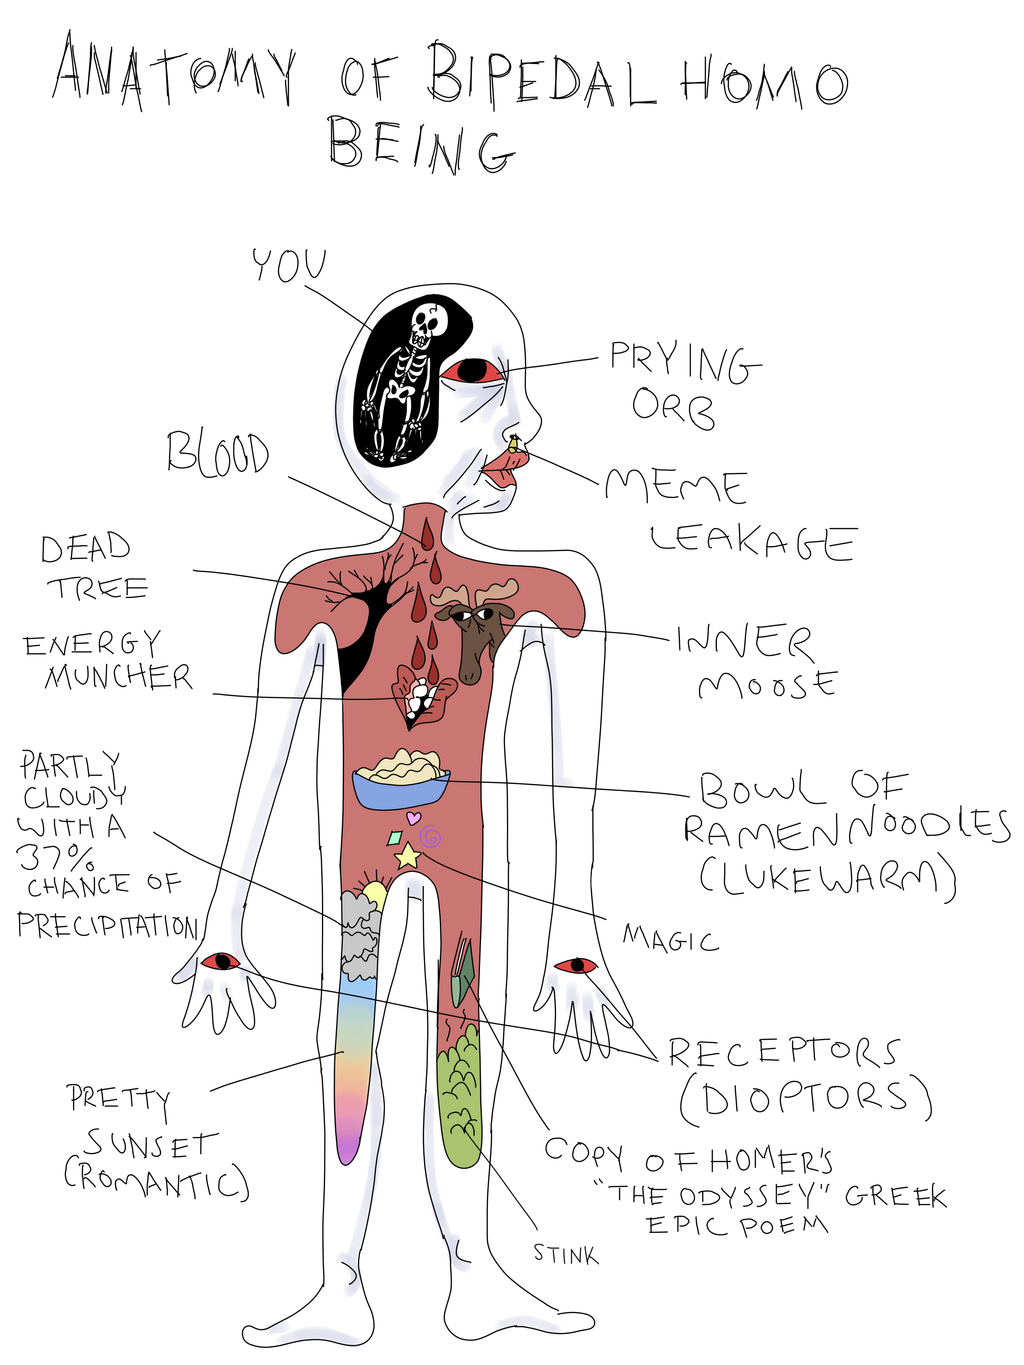 Anatomy Of Bipedal Homo Being By Grandiose Delusions On Deviantart